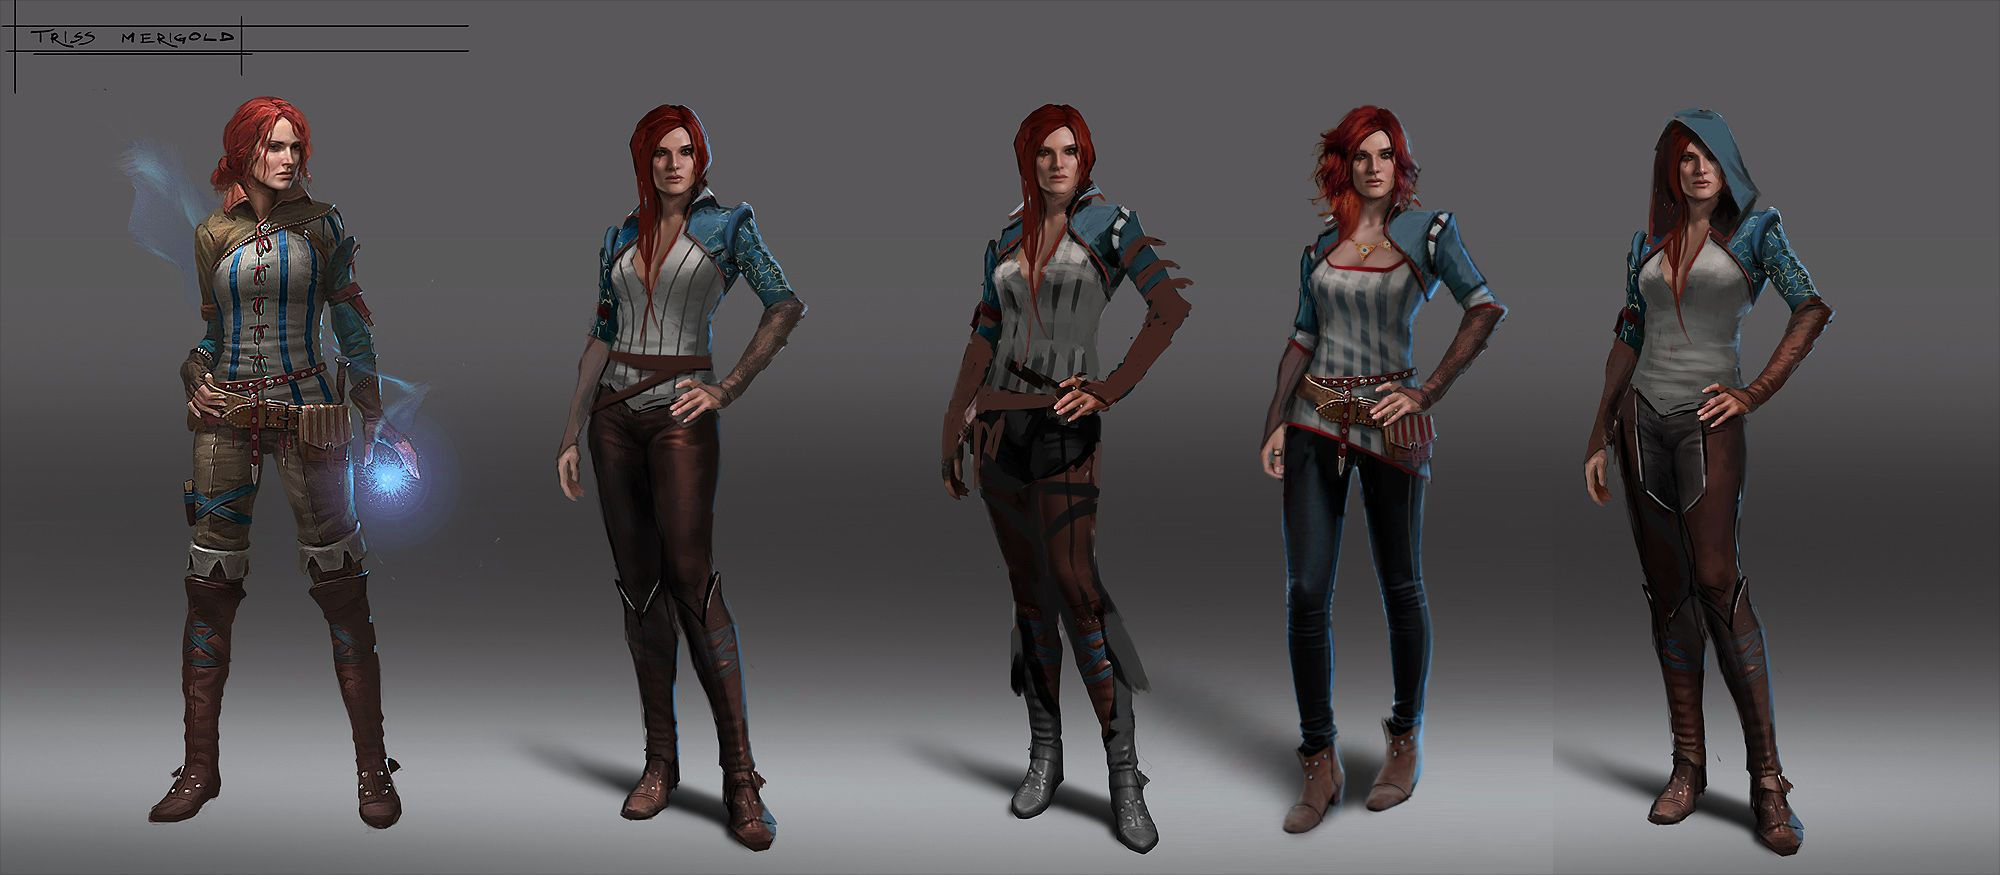 the-witcher-3-triss-merigold